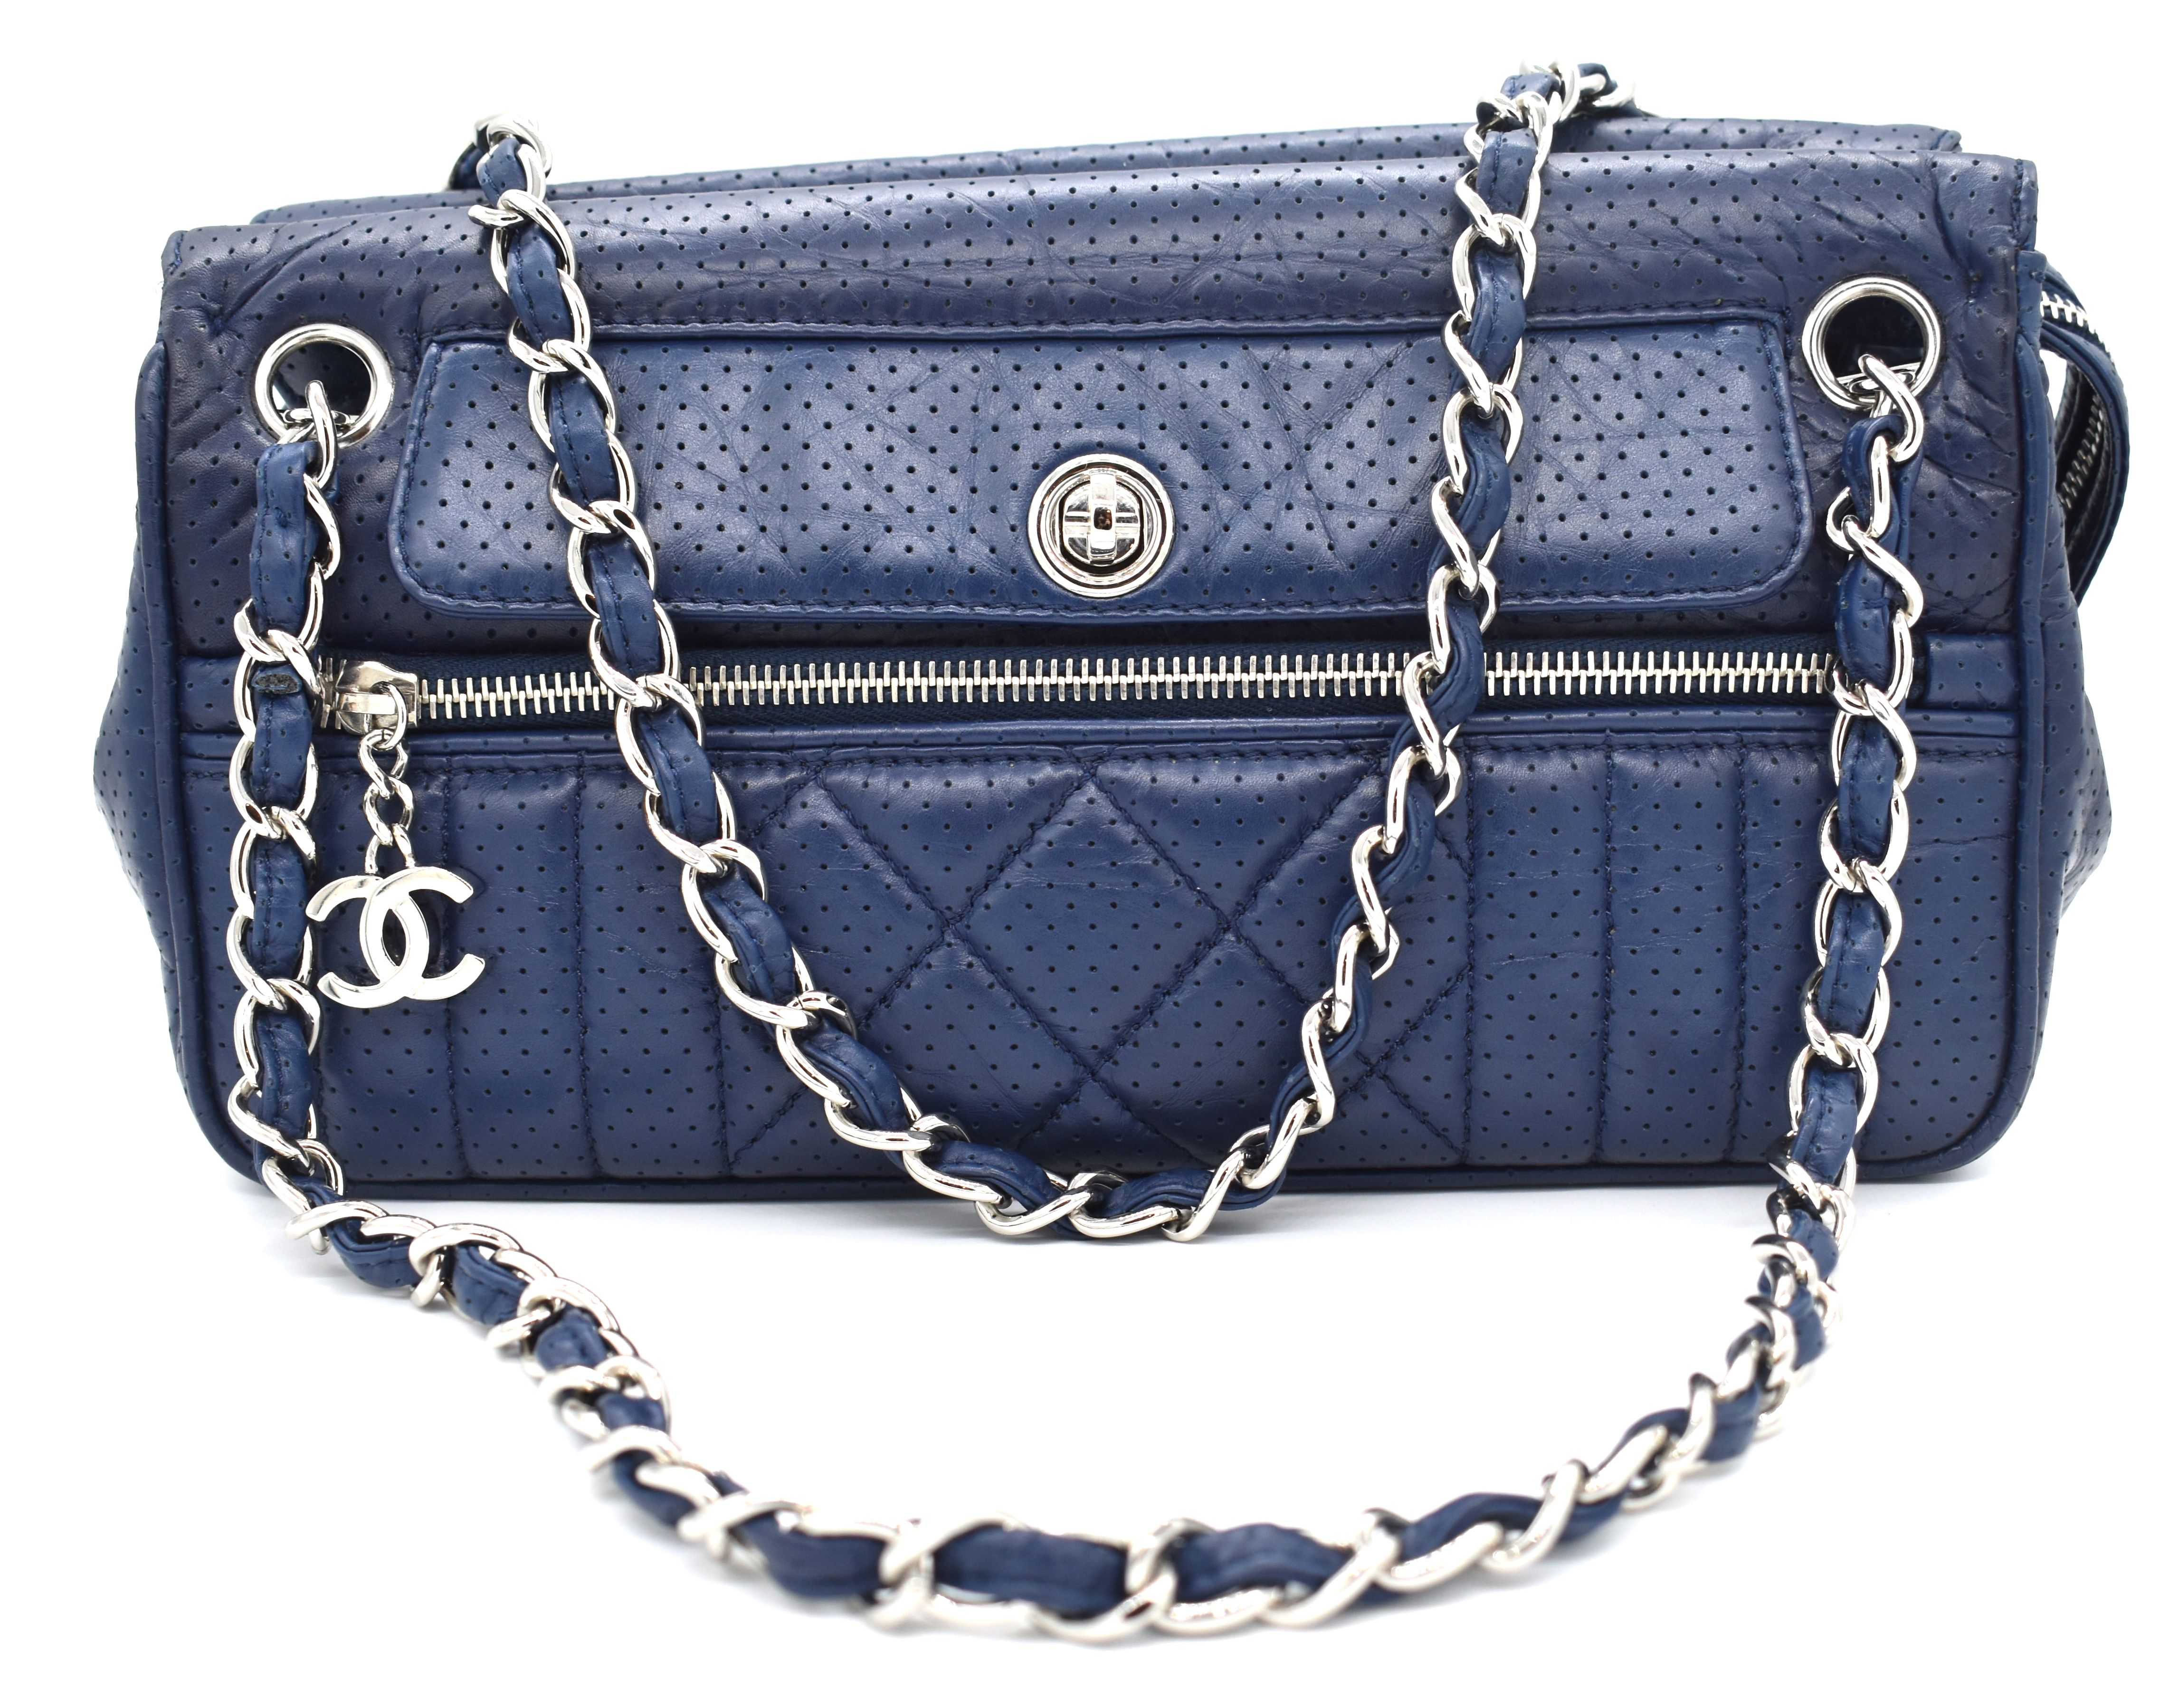 605c7559def5 All the Chanel, all the time. Rent this navy blue Chanel shoulder bag from  DesignerShare.